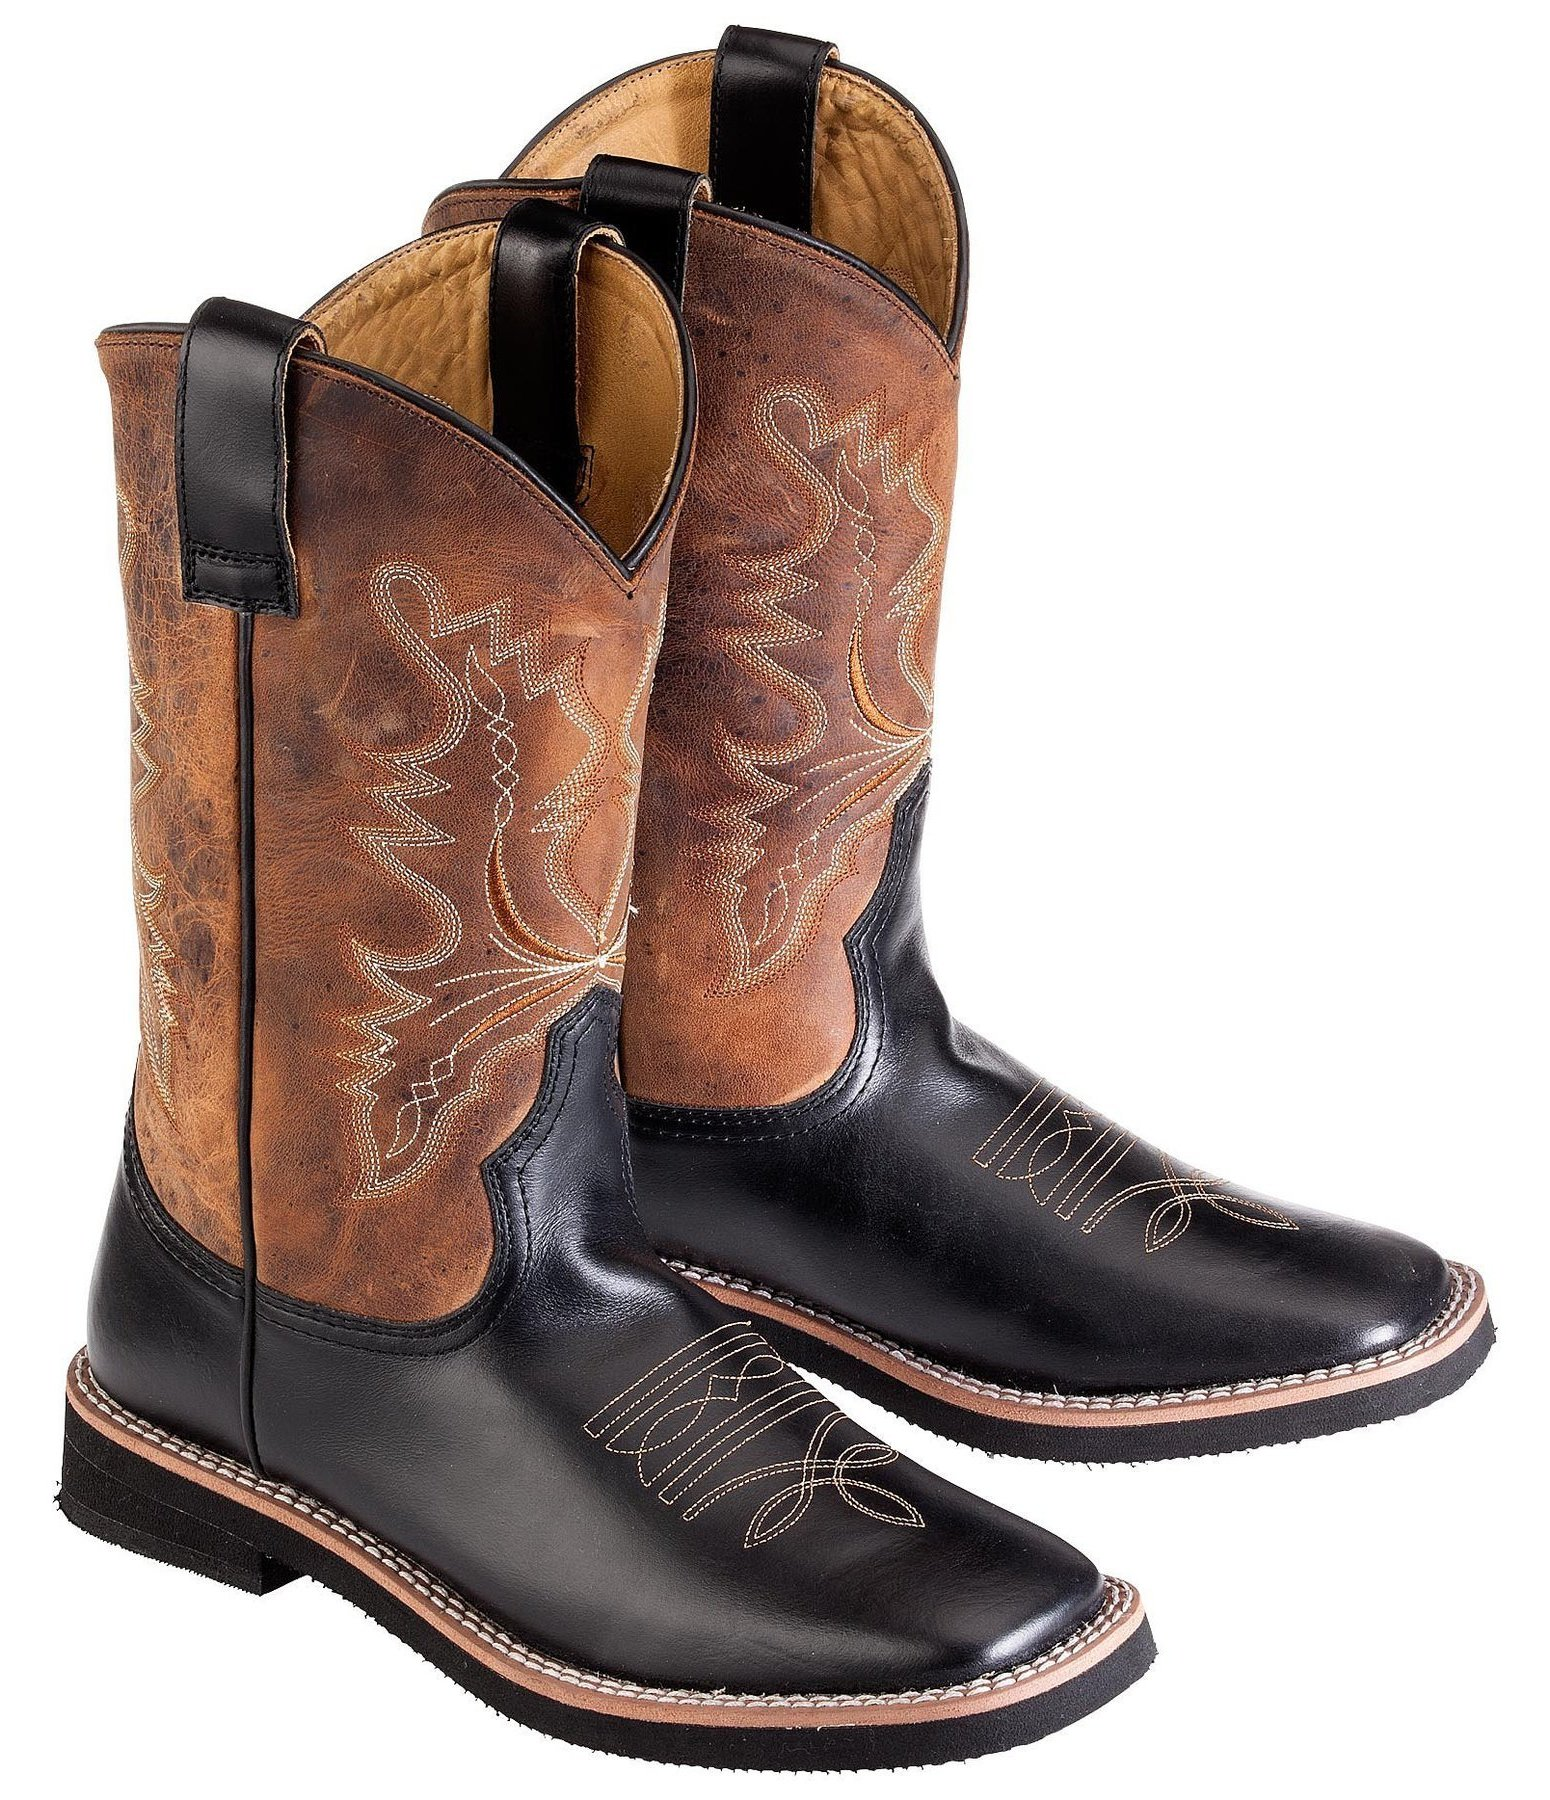 "Mar 29,  · ""What a nice surprise, buy 1 pair get two free, WOW!"" Review of Boot Country. 35 photos. Boot Country. If your looking for a pair of Cowboy boots, this is the place to go. Buy one pair and two free. Share with a family member or save them all for yourself. Large selection. Believe me, you won't walk away without a pair or three TripAdvisor reviews."